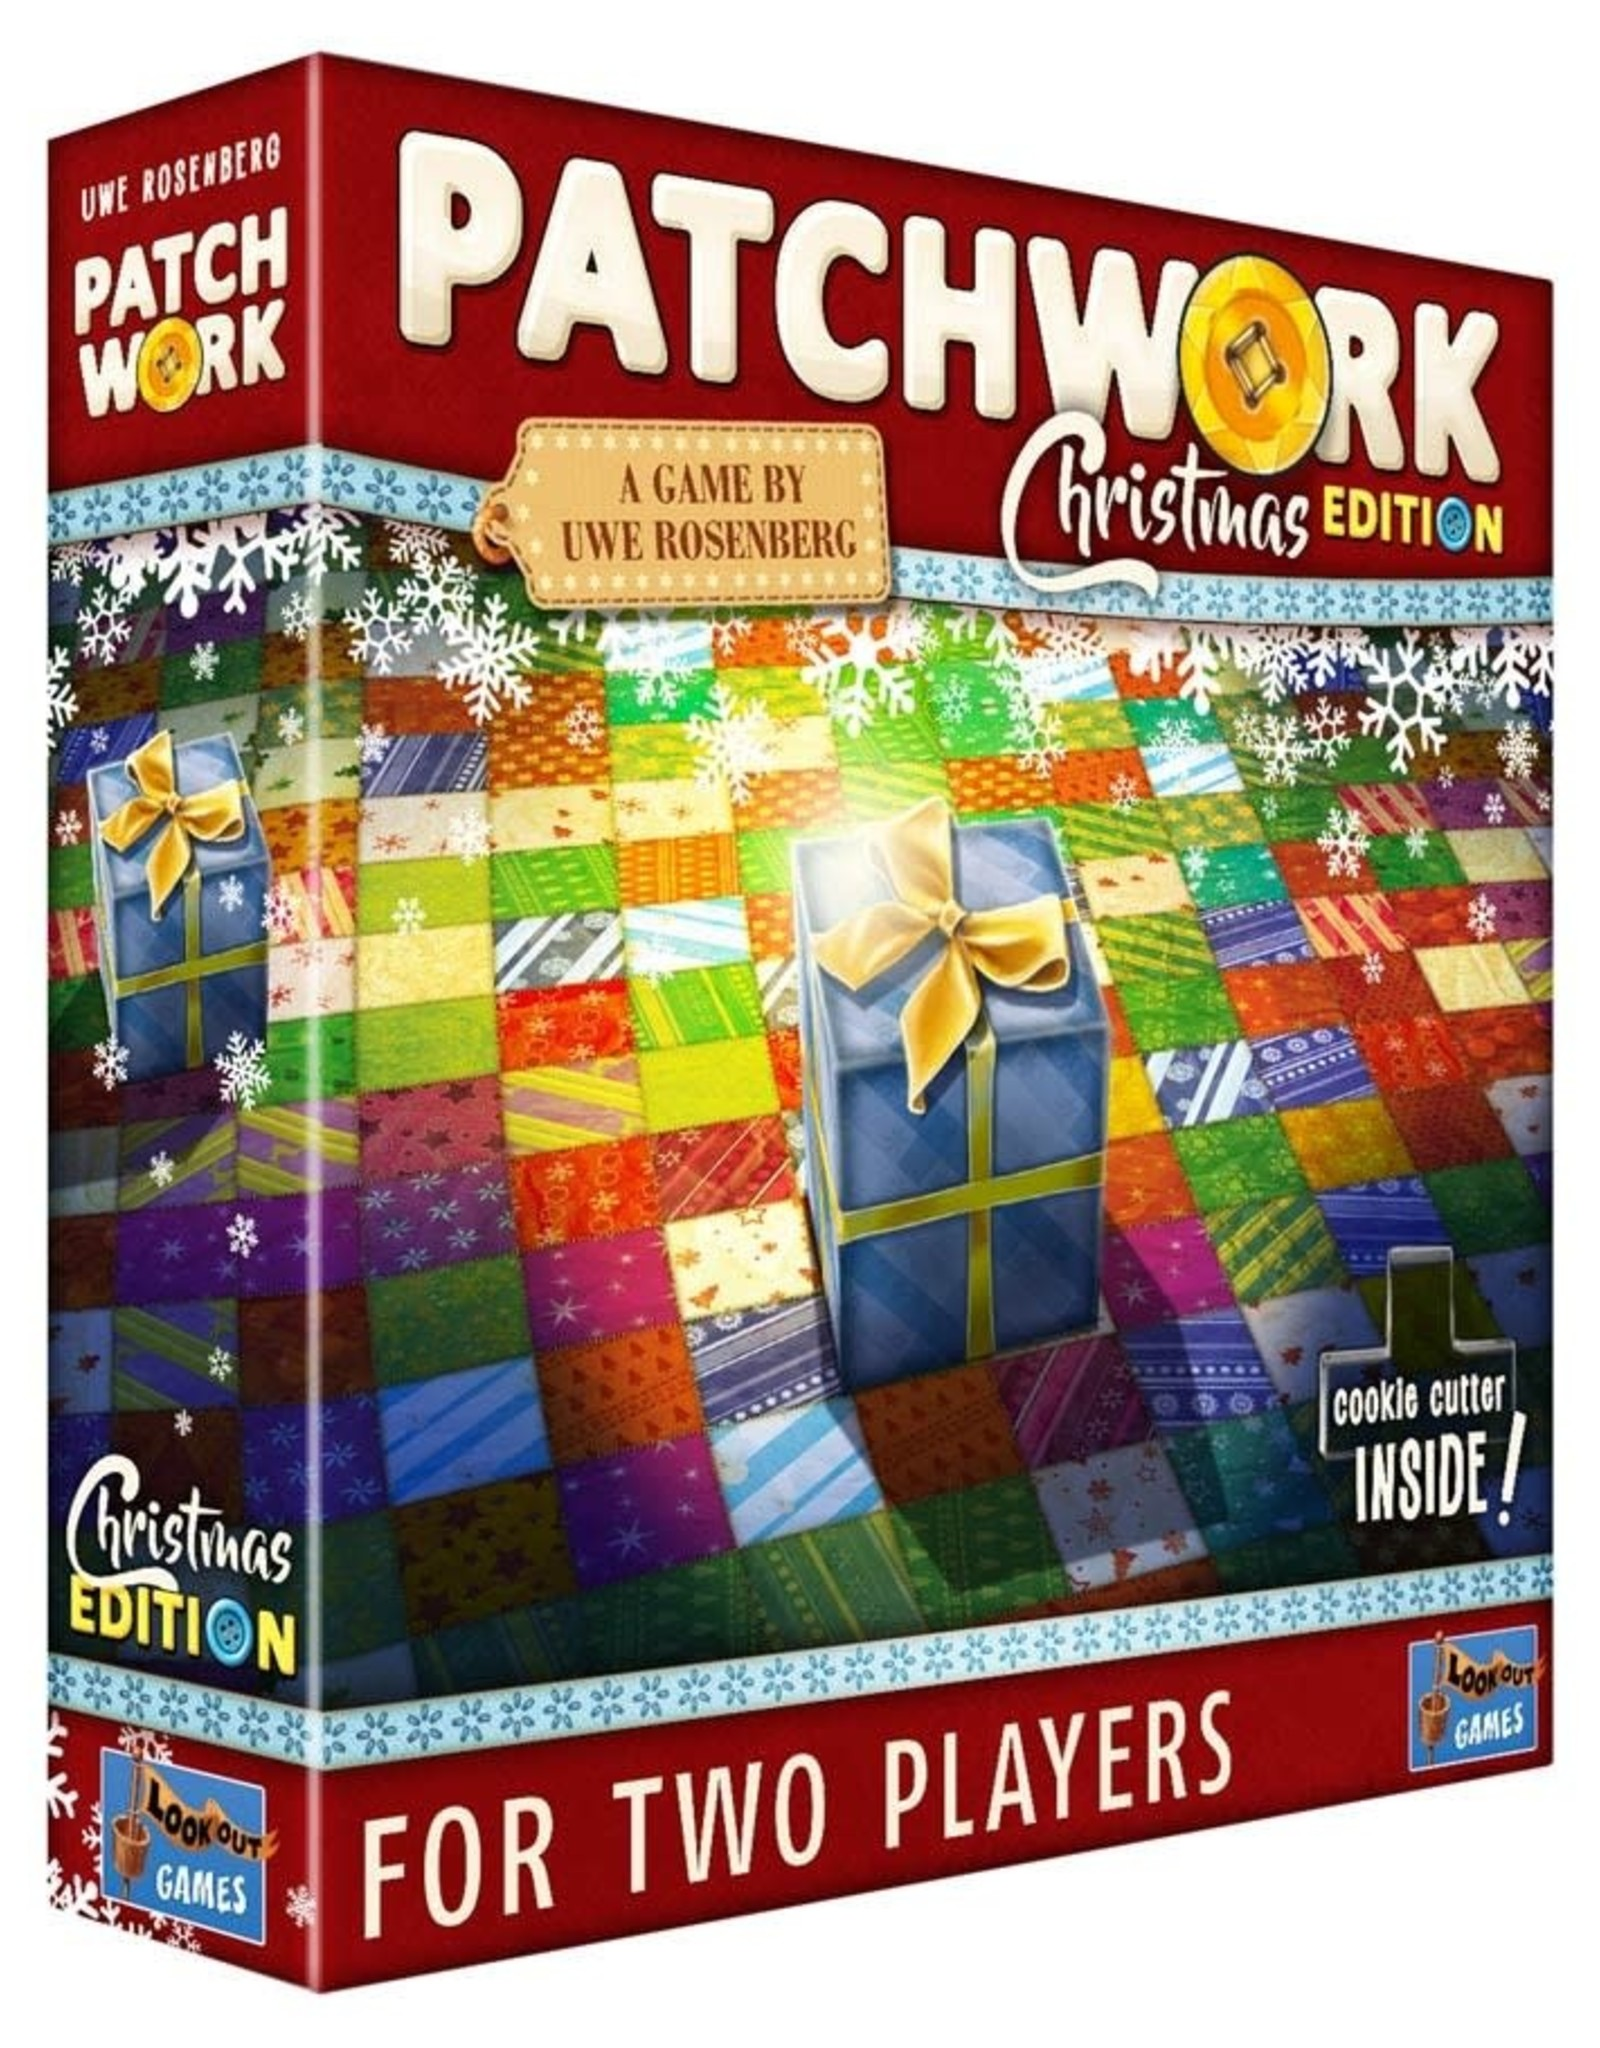 Patchwork Christmas Edition